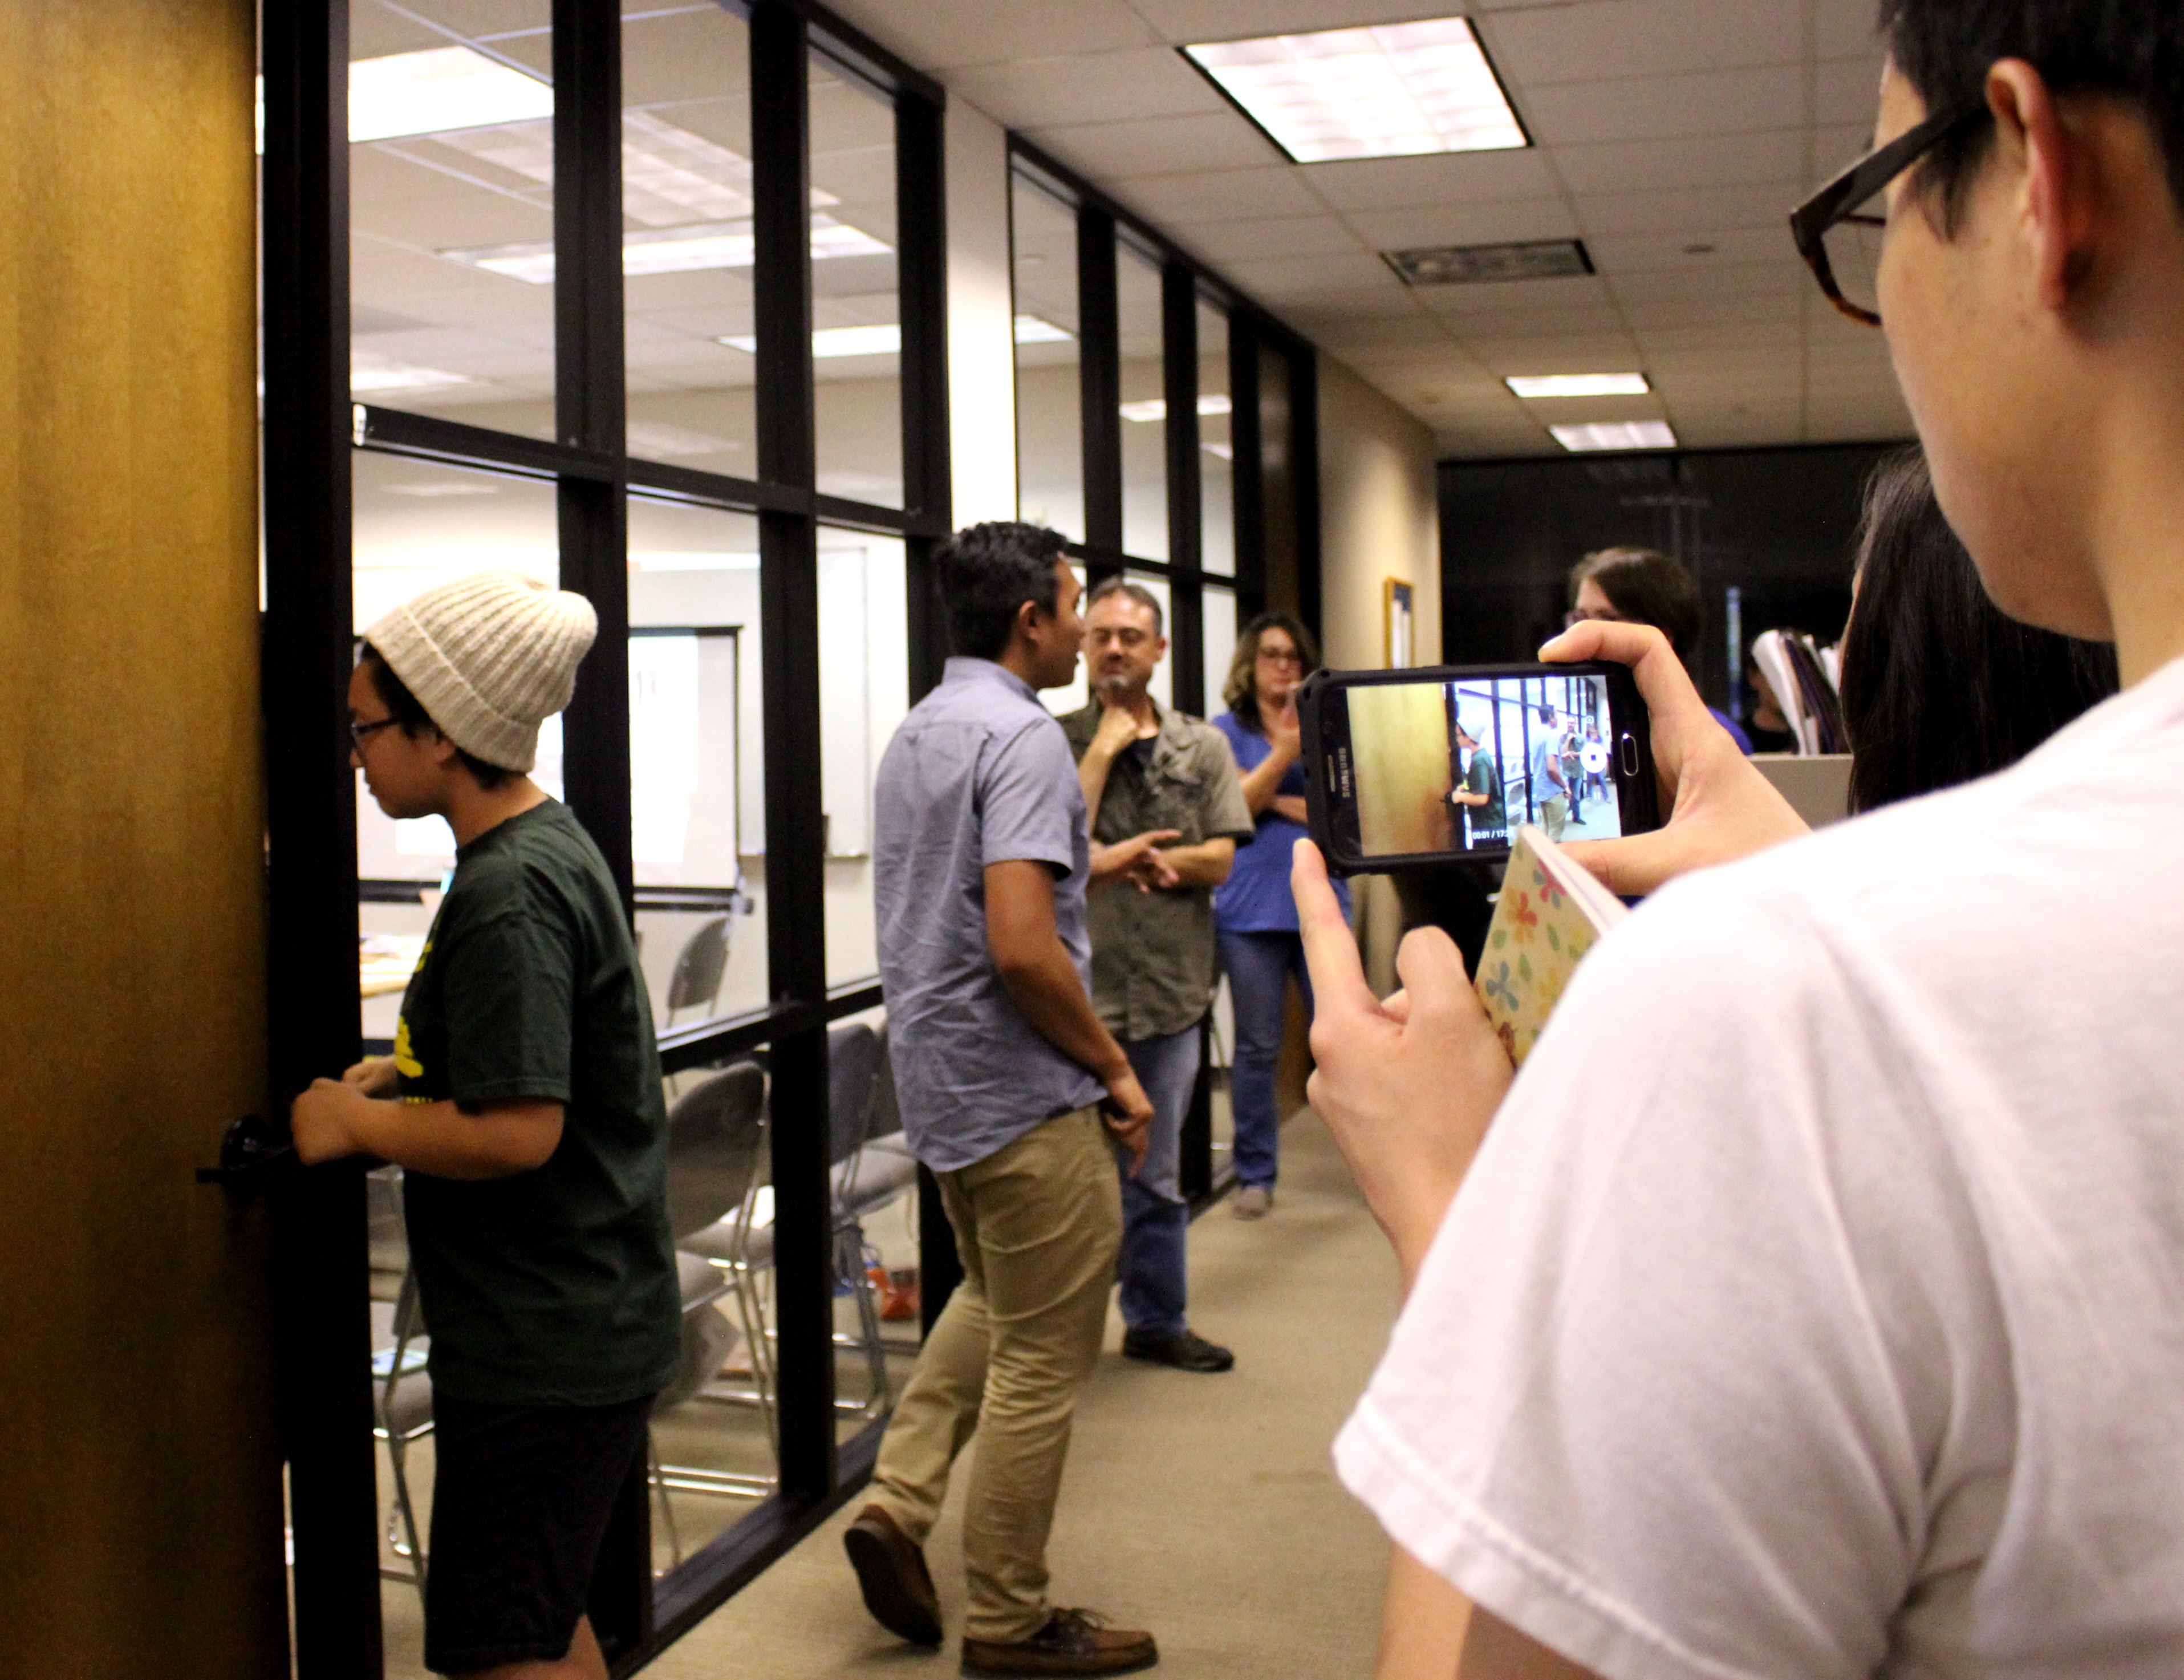 Participants at a Santa Clara Rapid Response Network training use cell phone cameras and notepads to document a simulated ICE enforcement operation. (Jackie Botts/Peninsula Press)